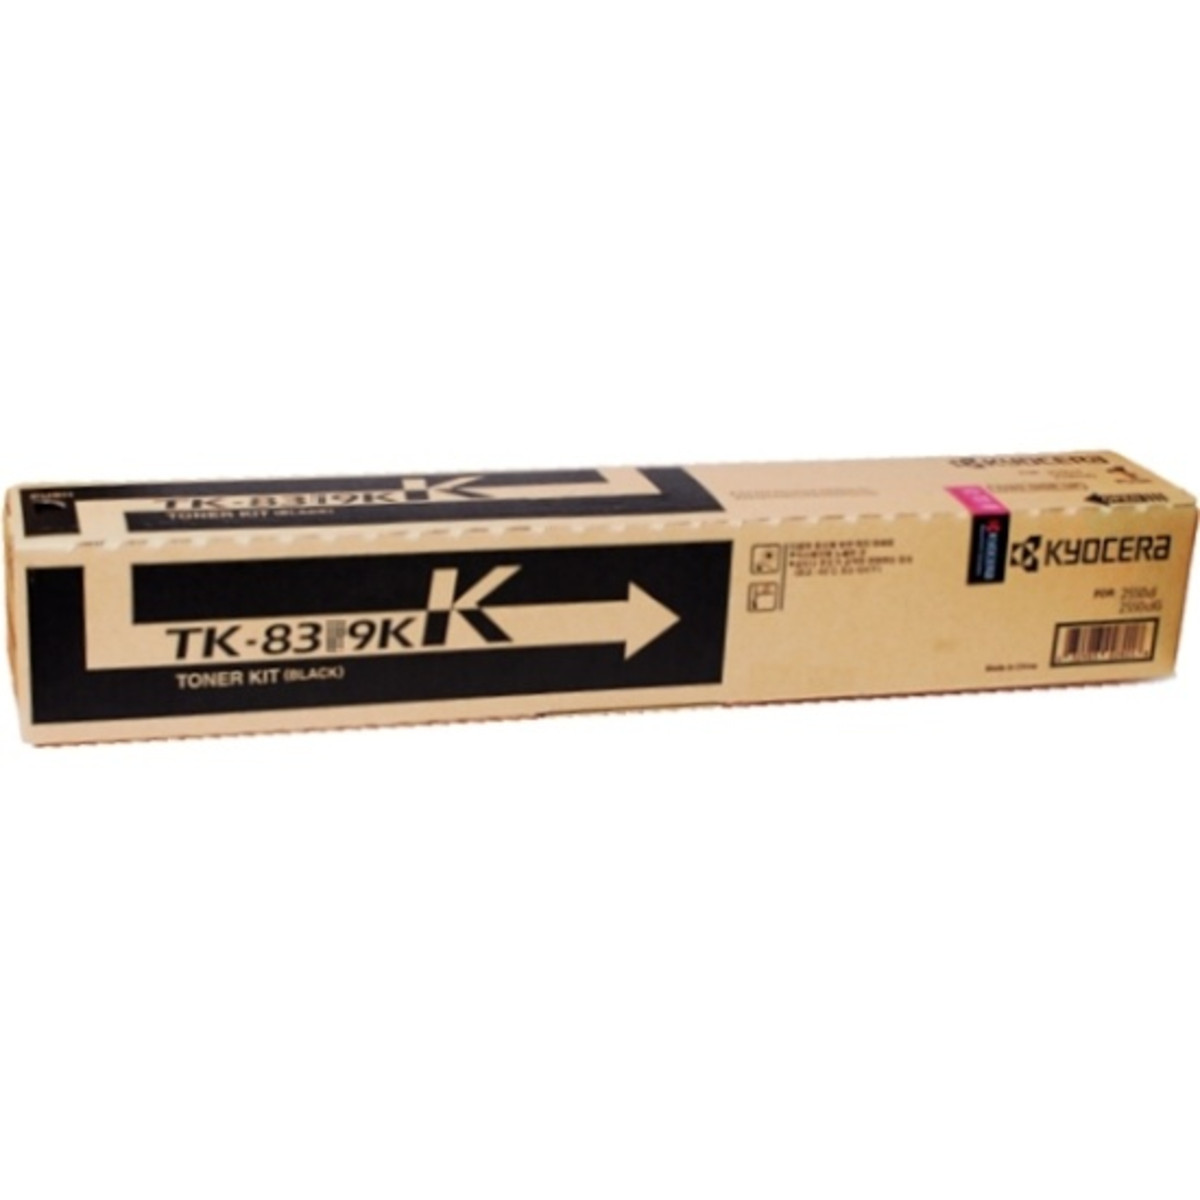 Kyocera TK-8329K Black Toner Cartridge